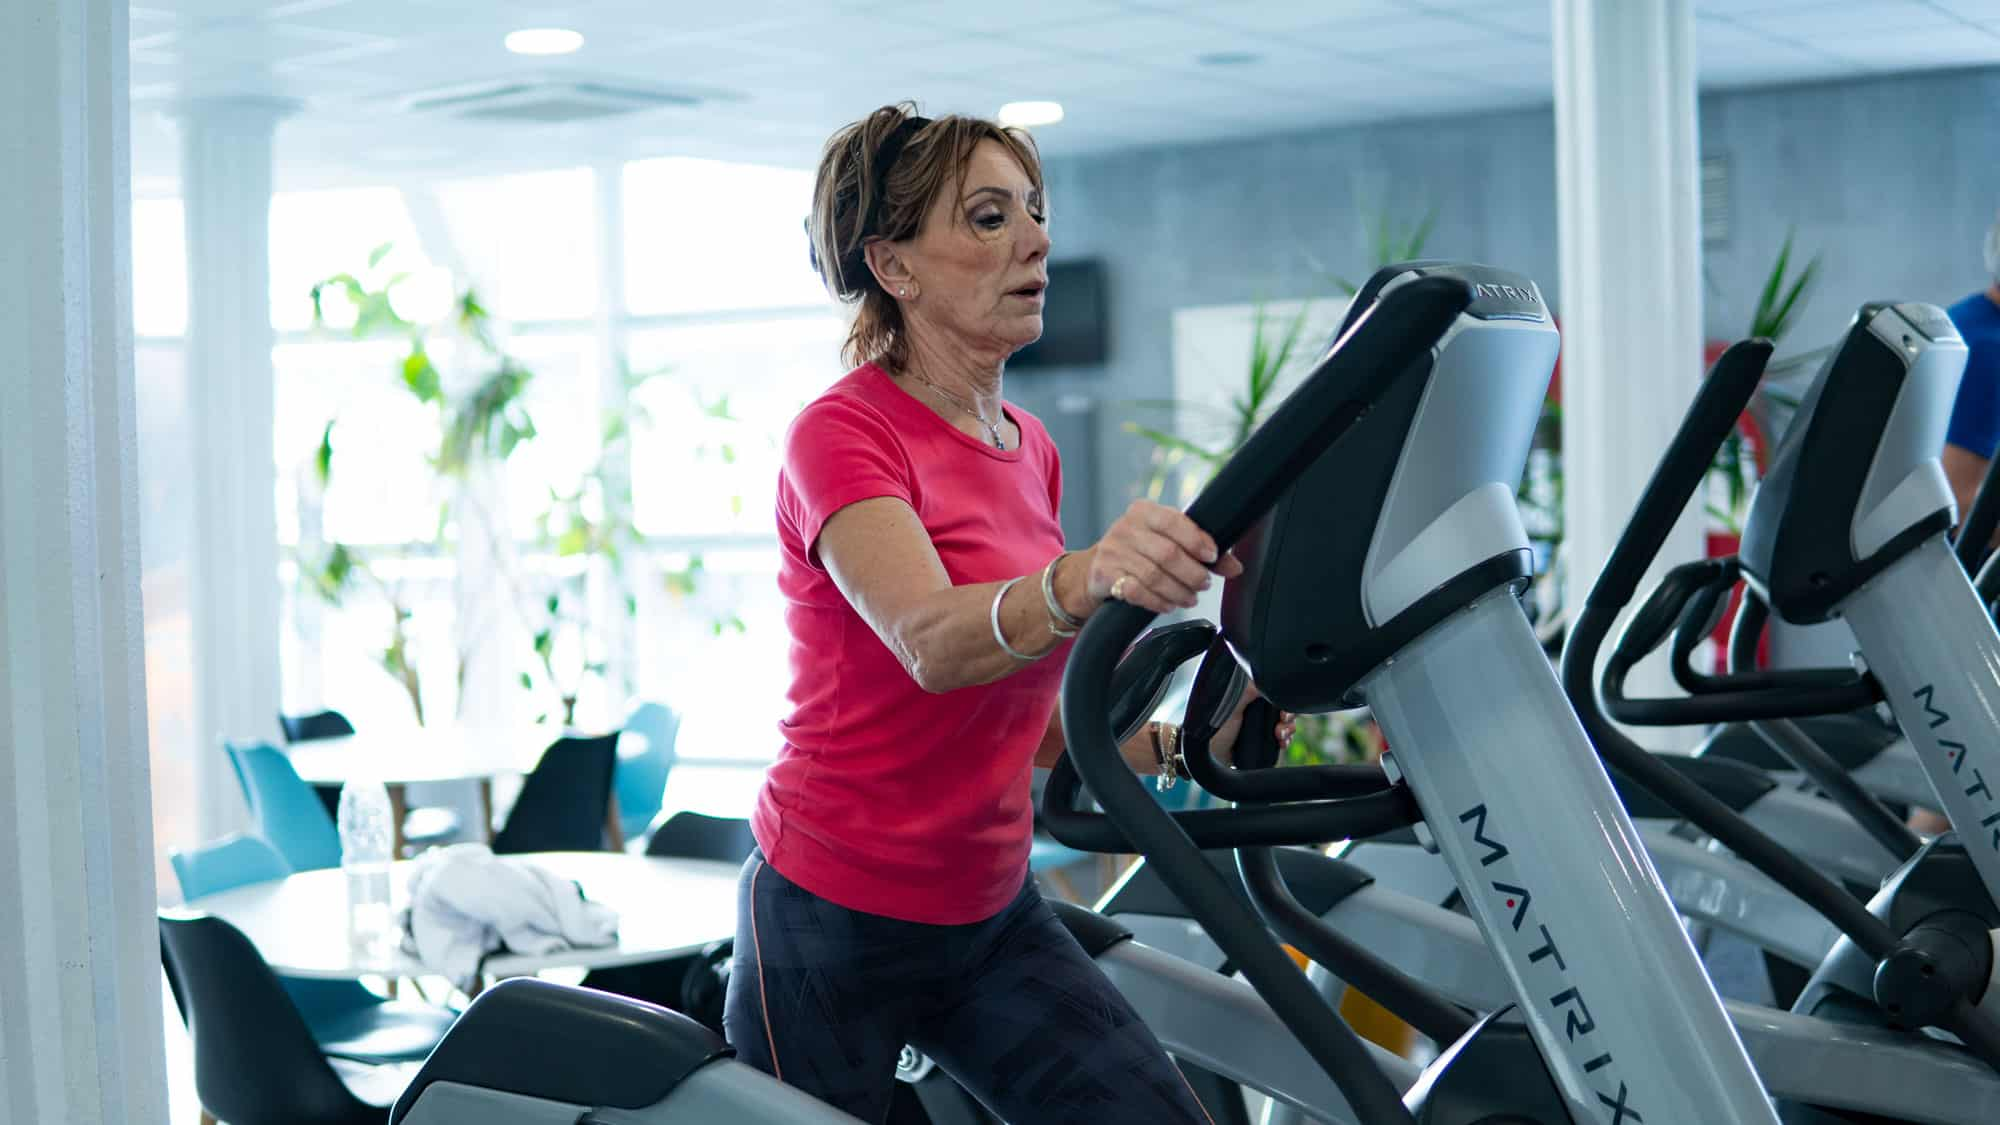 exercice cardio remise en forme 60 ans